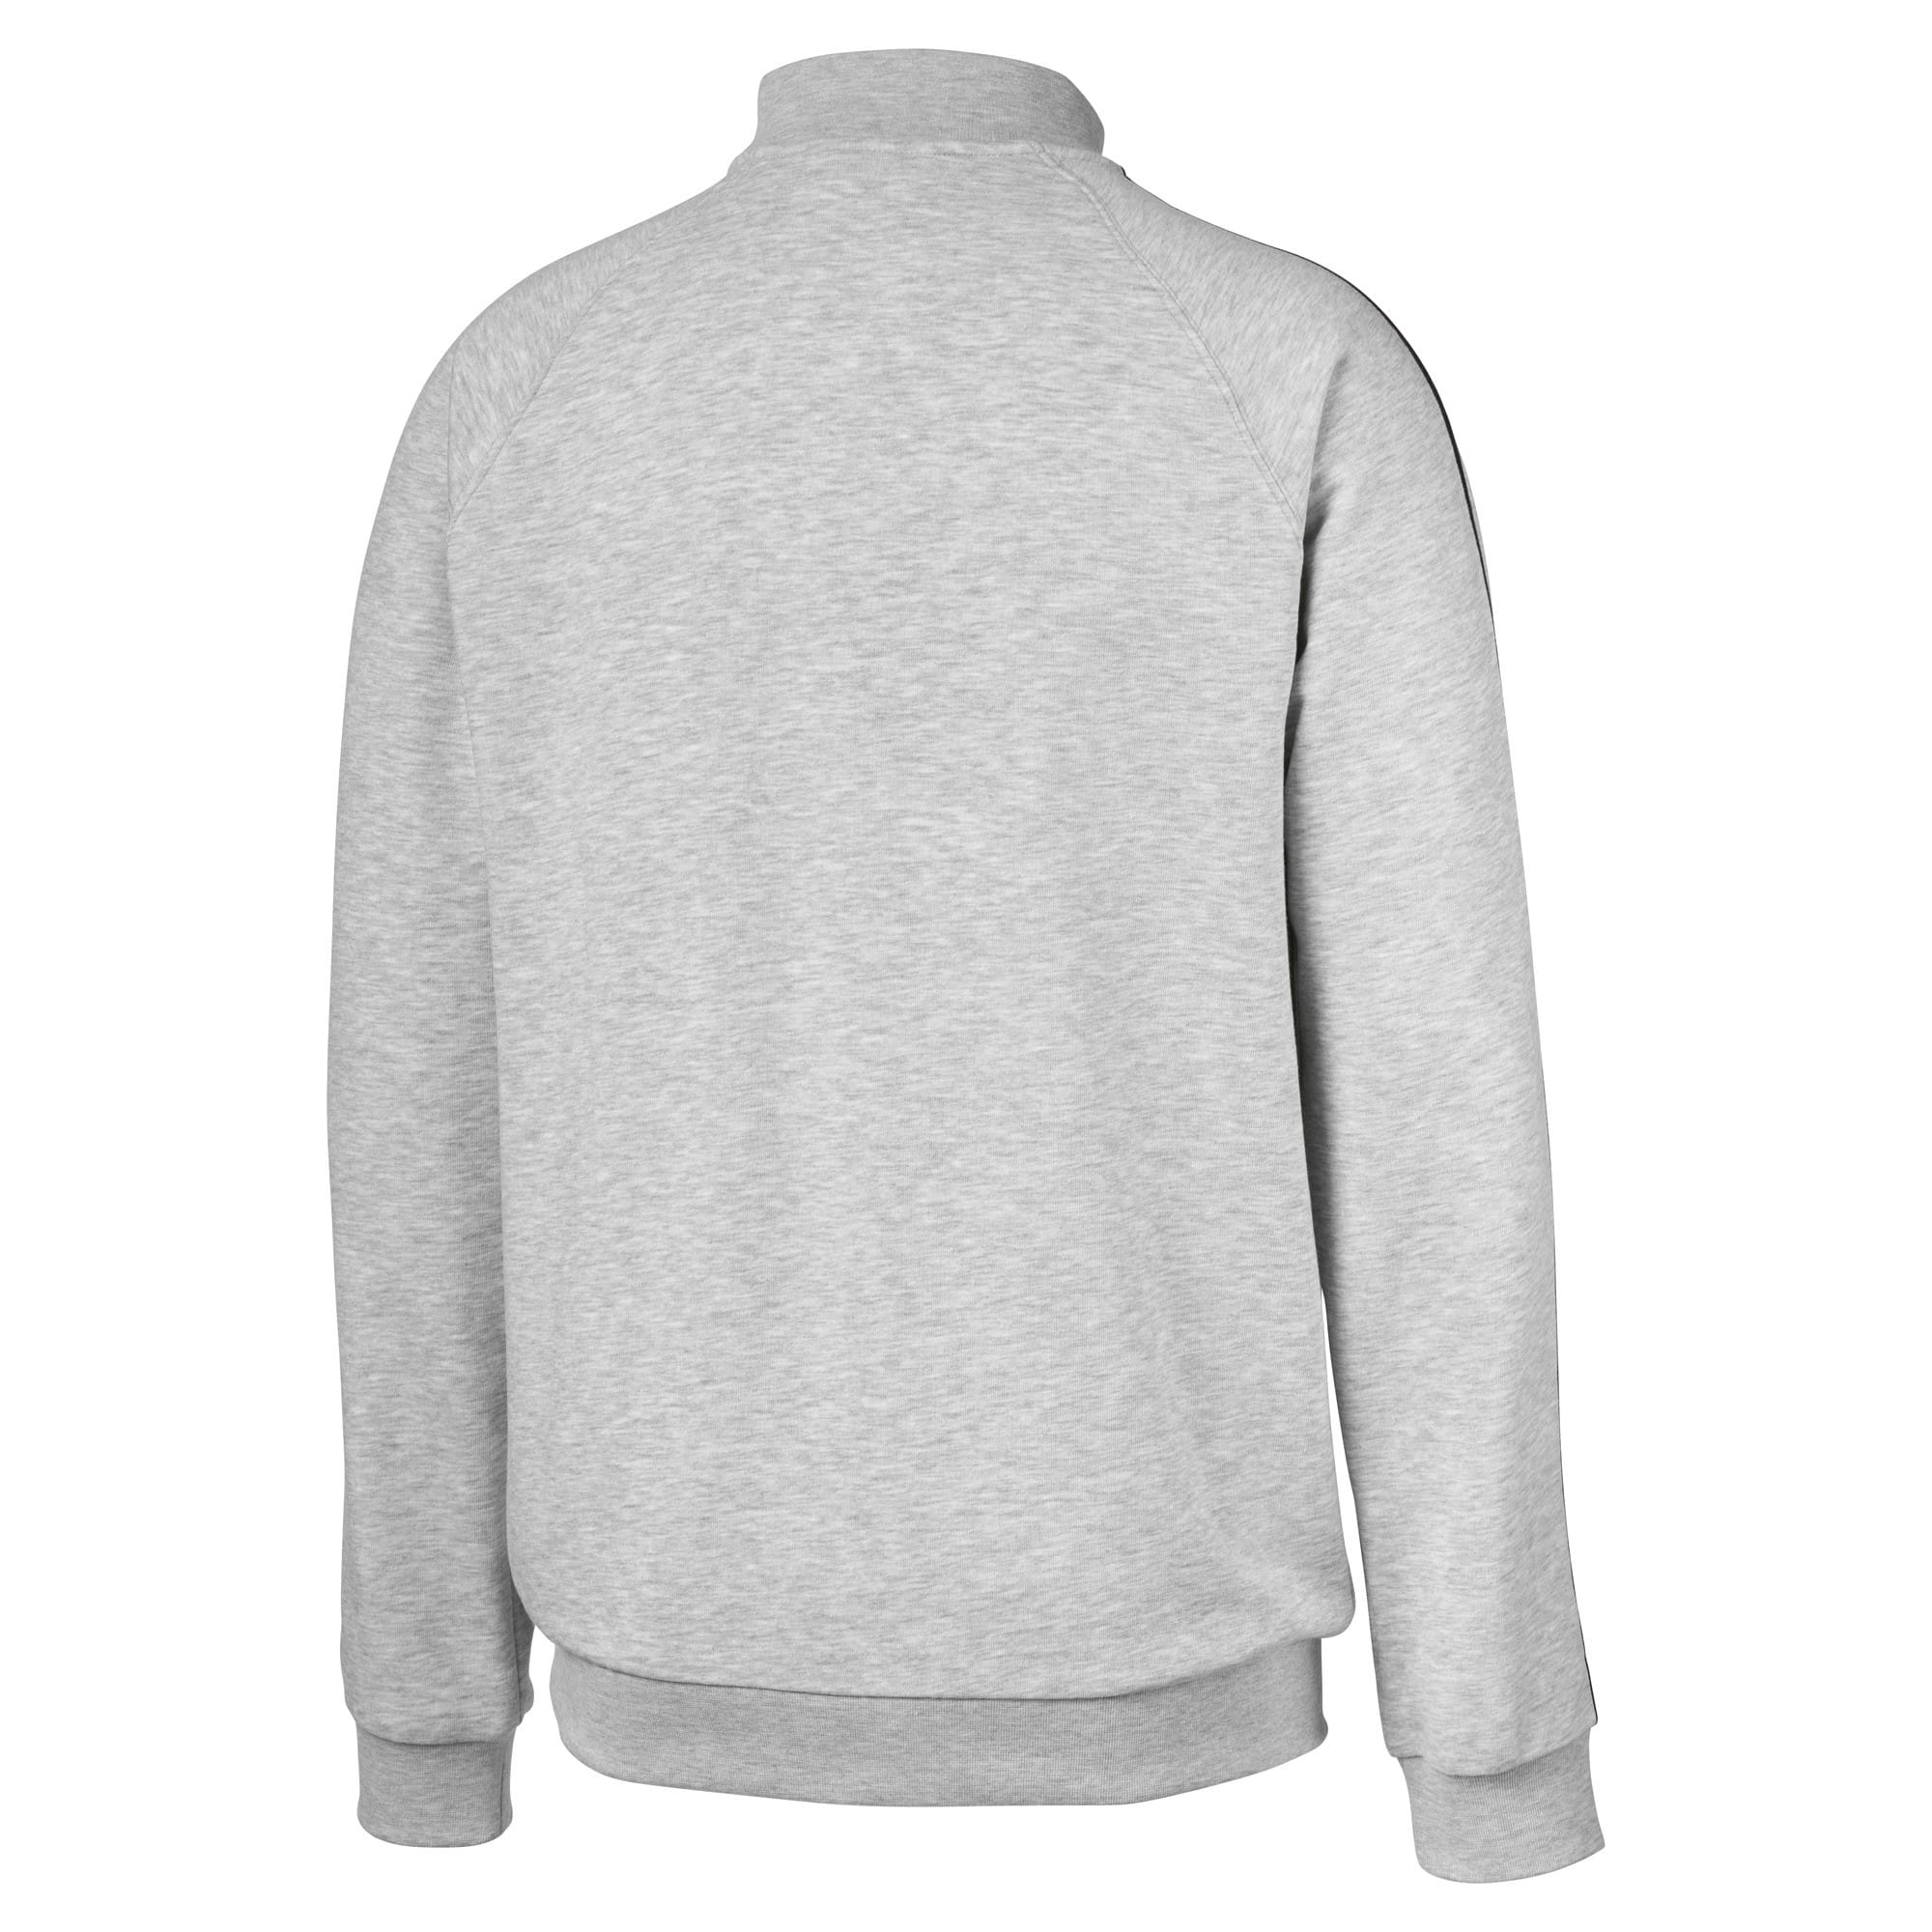 Thumbnail 2 of Evolution Half Zip Men's Sweater, Light Gray Heather, medium